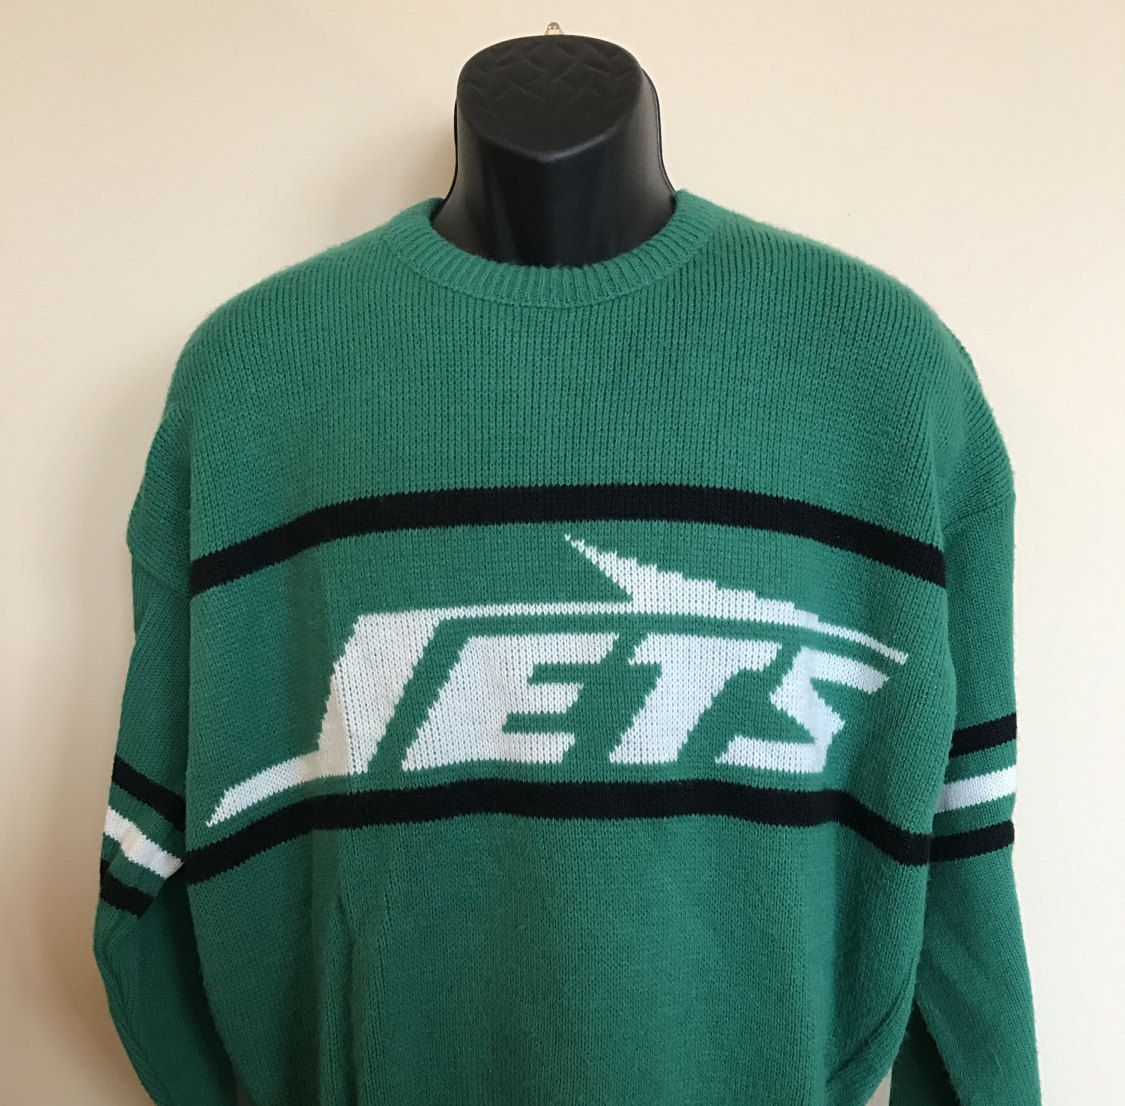 752e48439 80s Cliff Engle NY Jets Sweater Vintage New York Footbal NFL Jersey Shirt  Super Bowl 90s Joe Namath Large L Made In USA